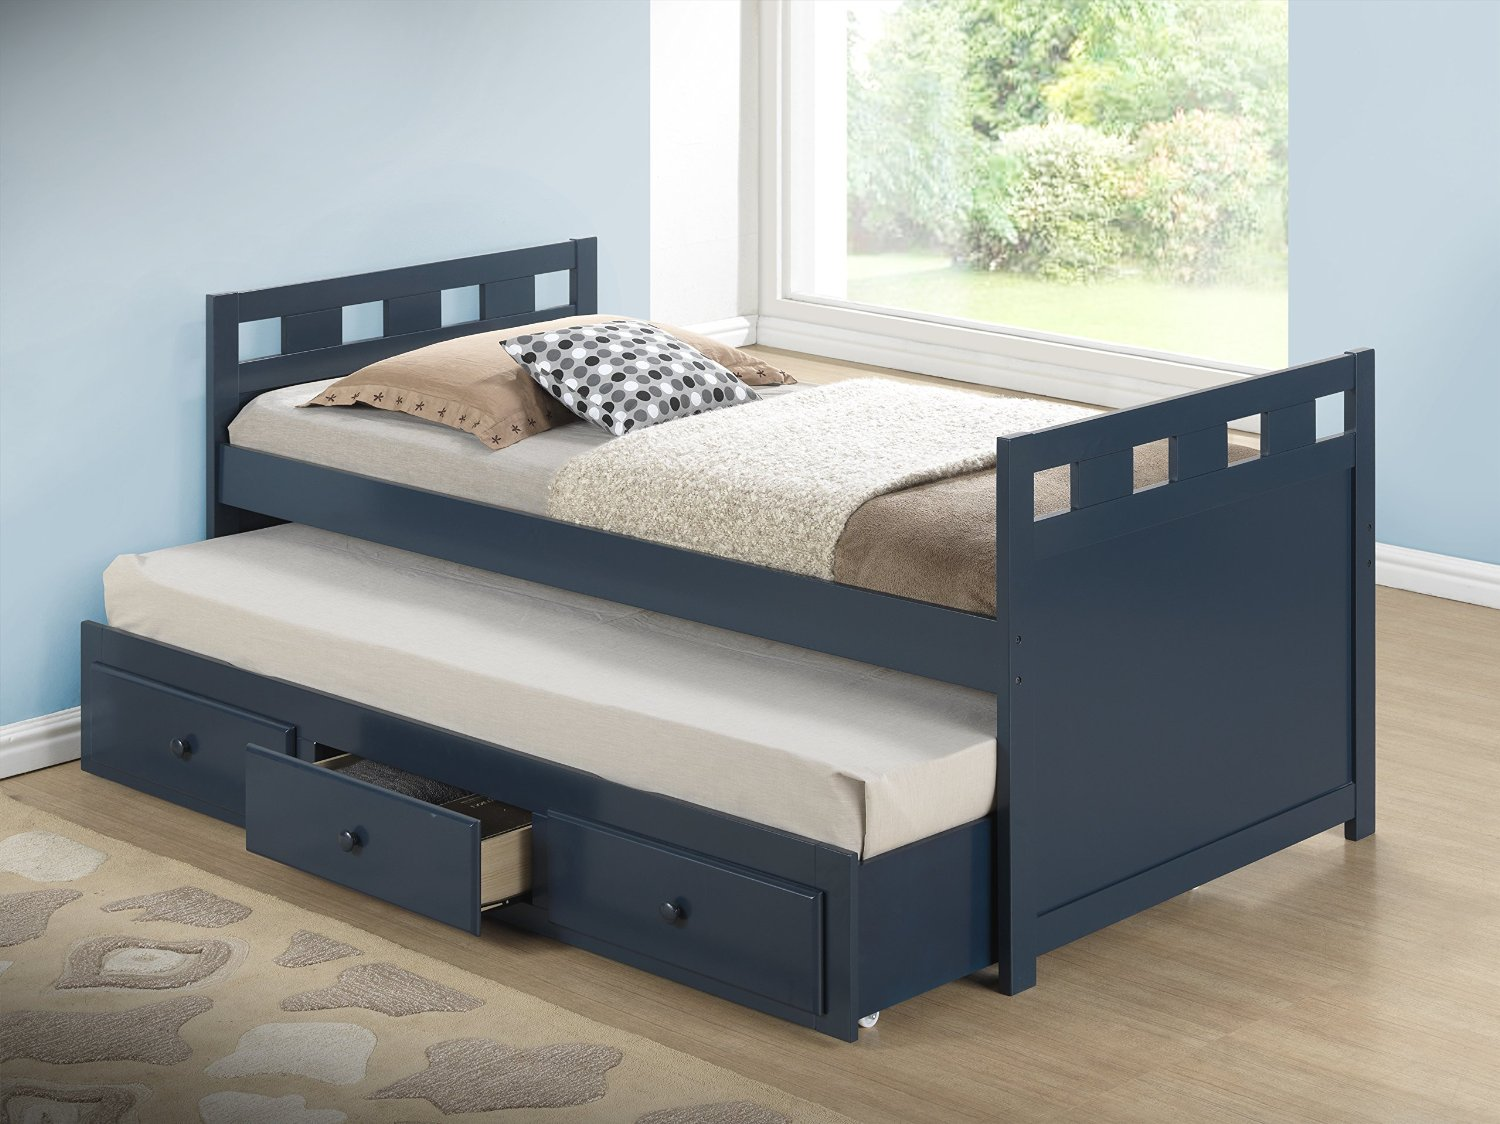 Total Fab Twin Bed With Pull Out Slide Out Trundle Bed Underneath Best Beds For Small